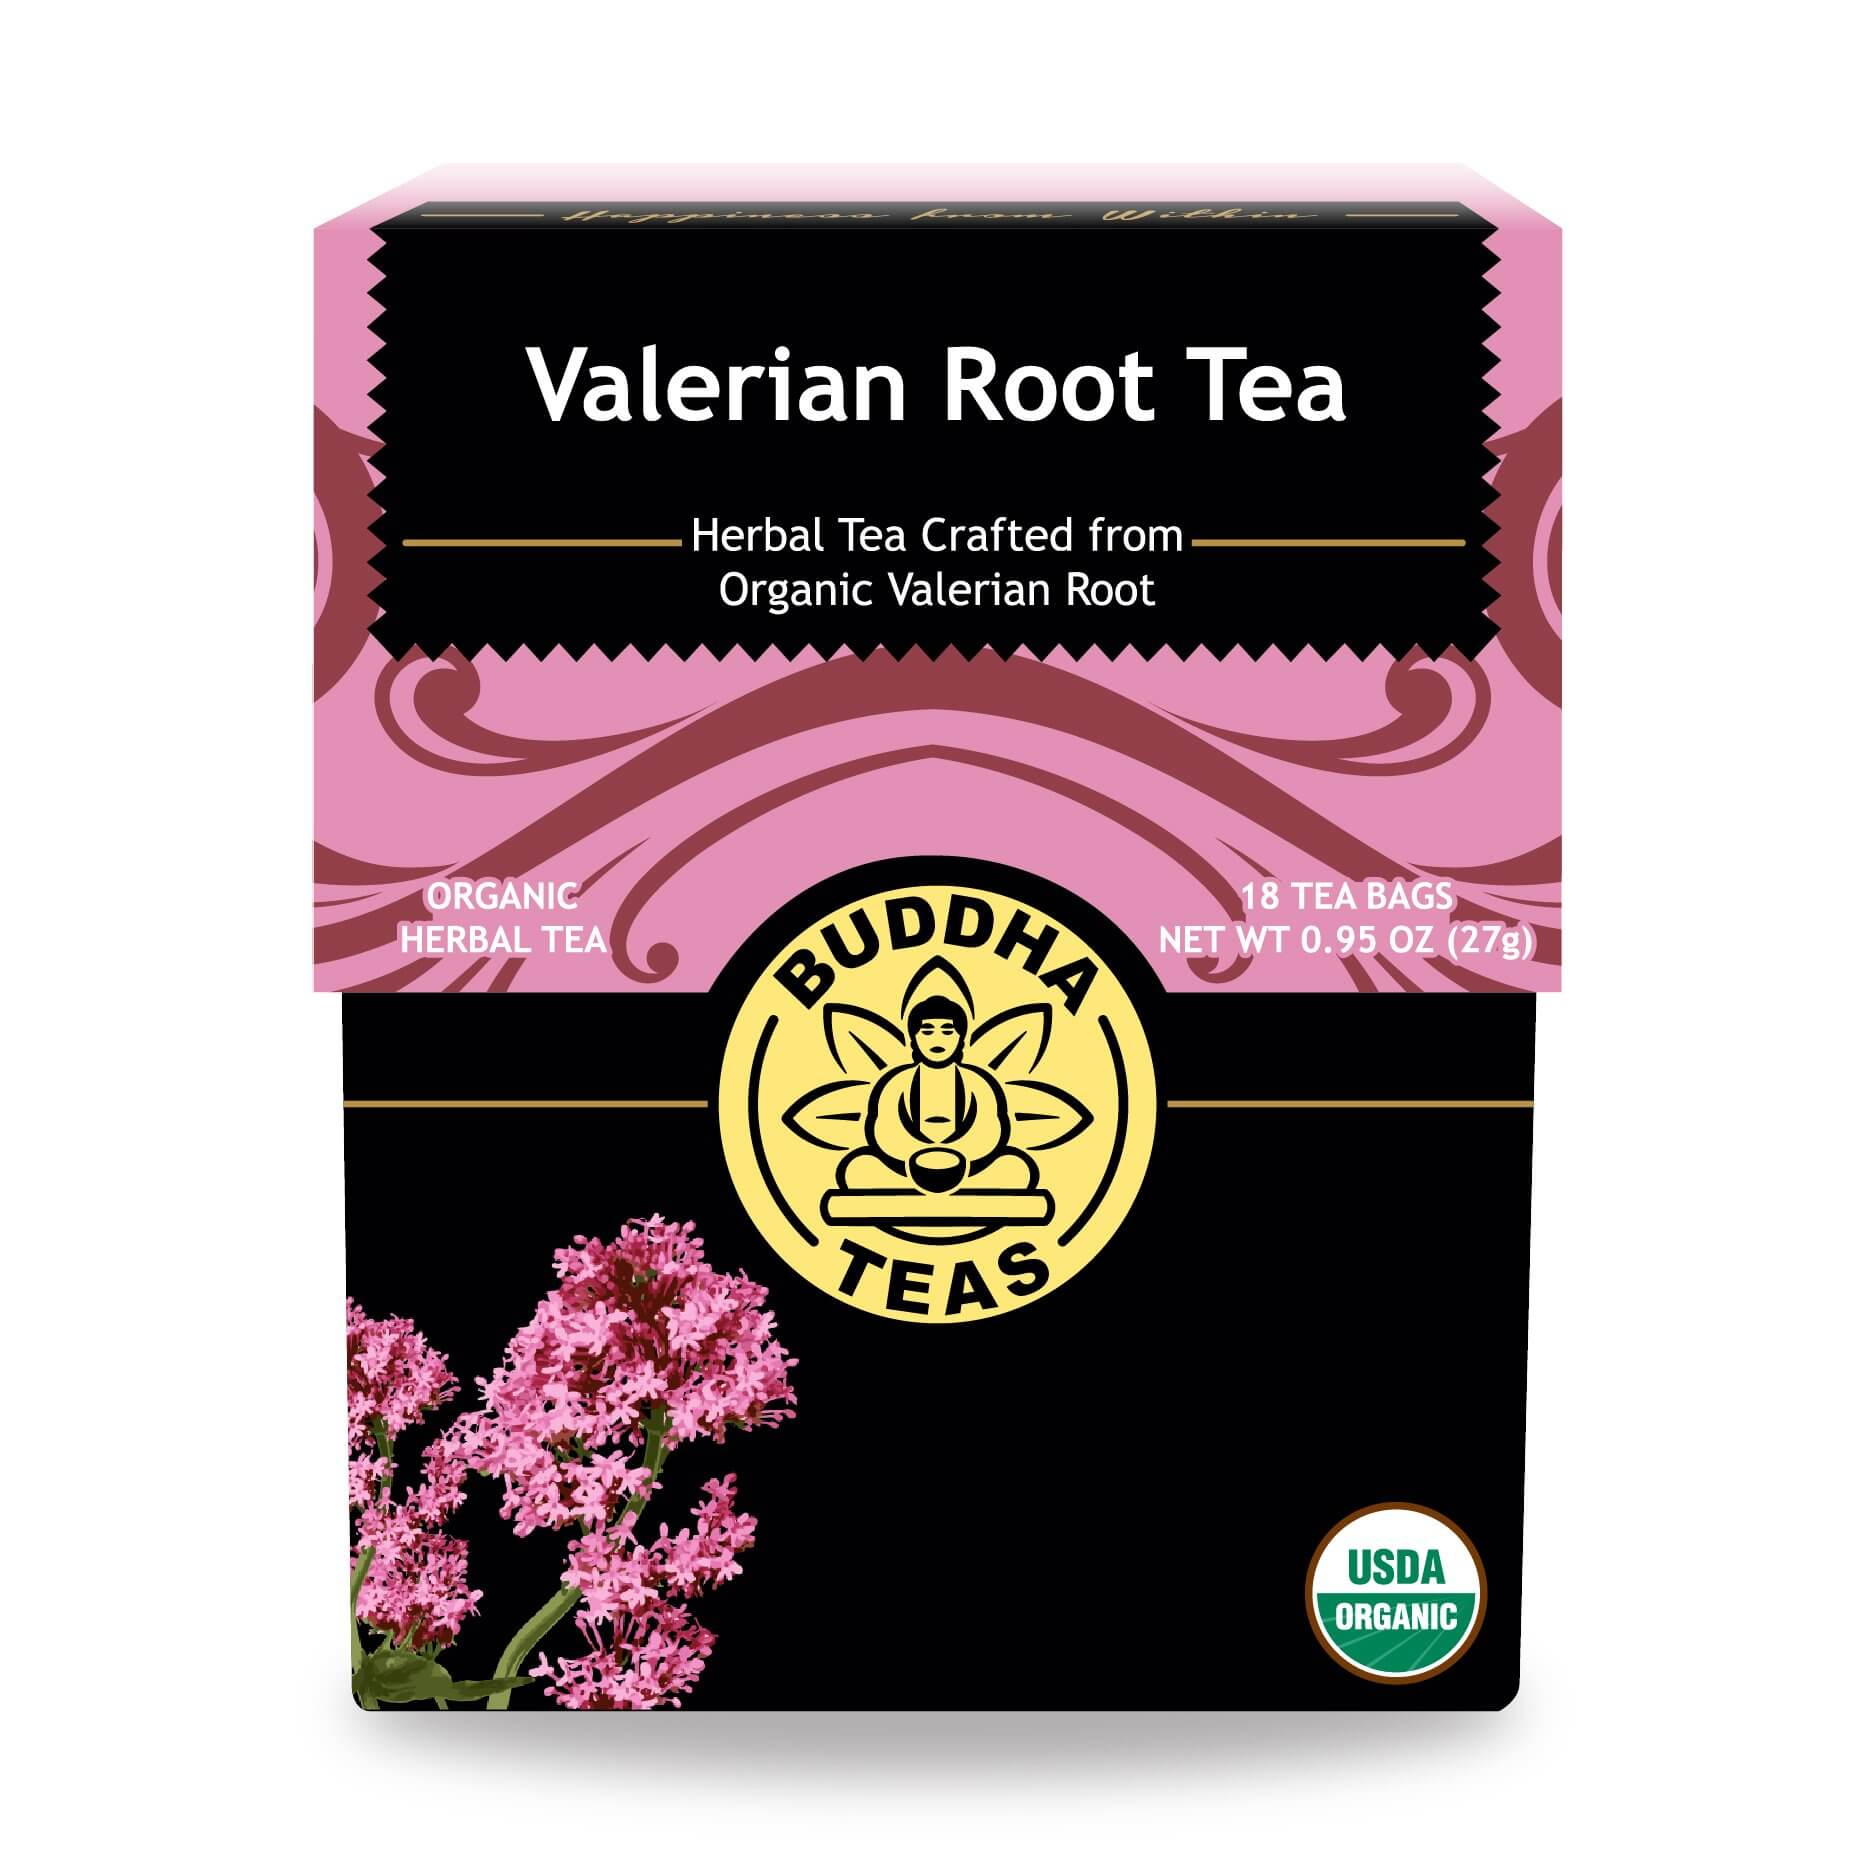 Buy Valerian Root Tea Bags Enjoy Health Benefits of Organic Teas